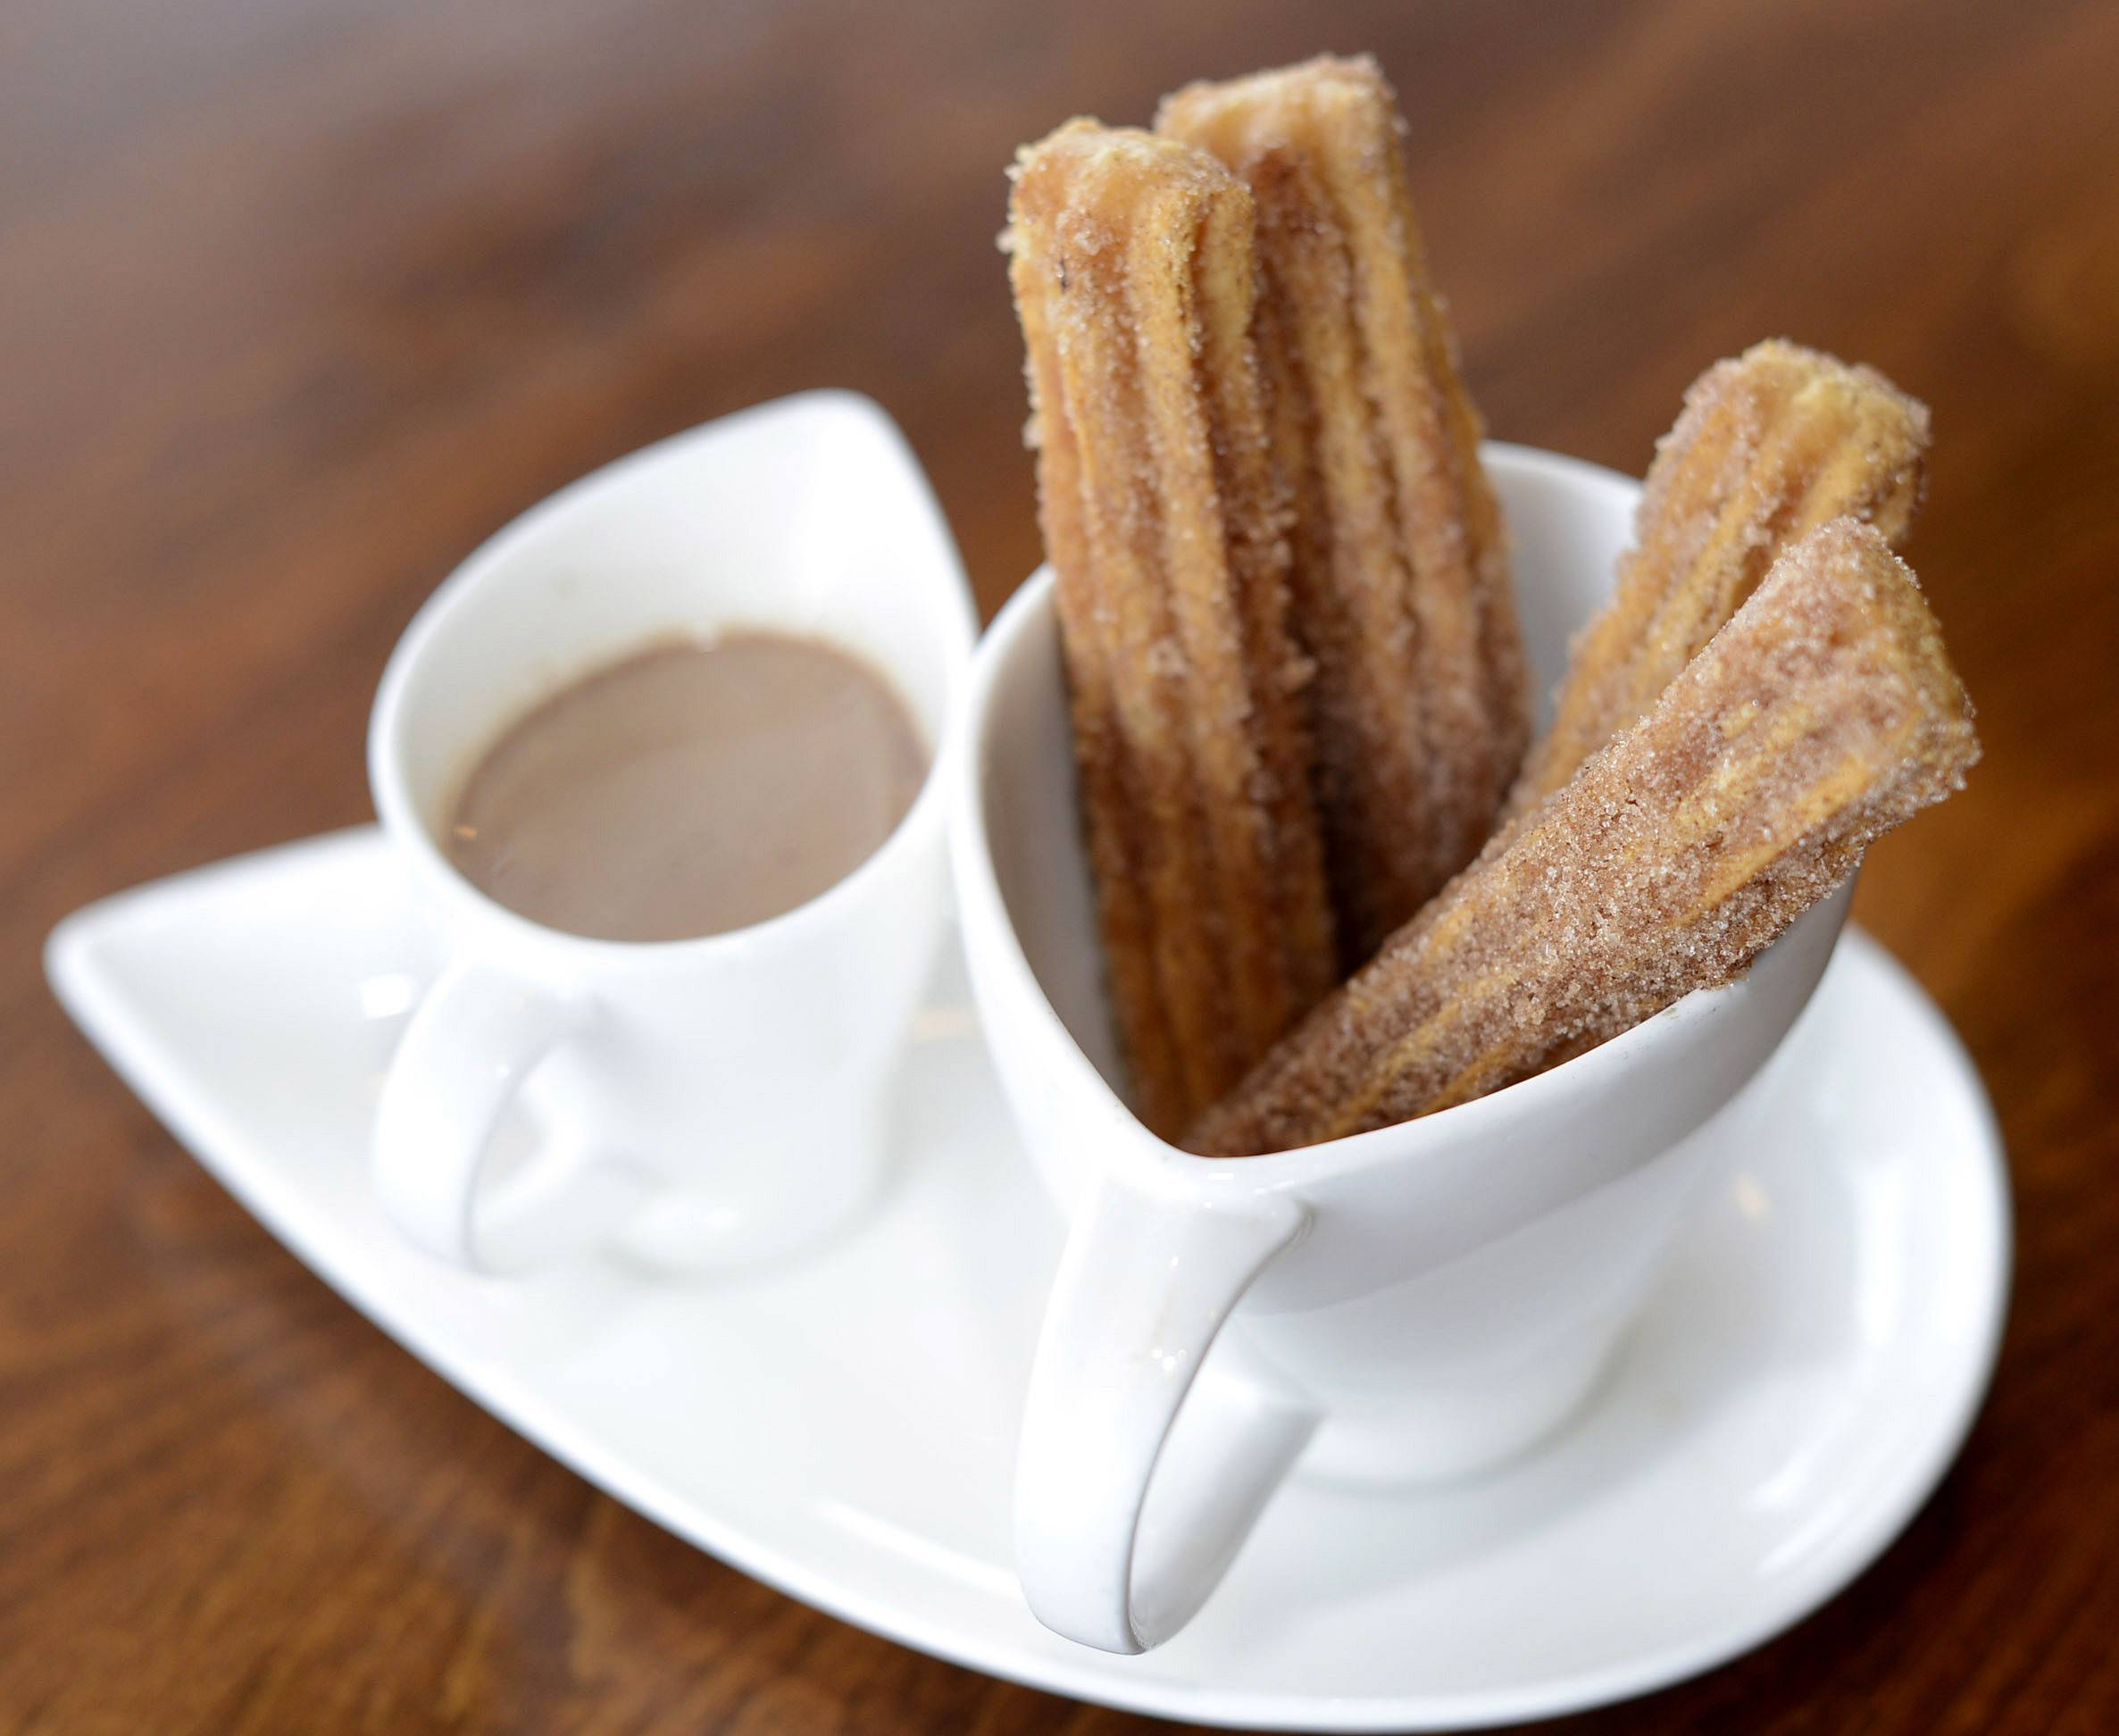 Homemade churros sprinkled with sugar and cinnamon are served with Mexican hot chocolate at Cactus Zone in Sleepy Hollow.